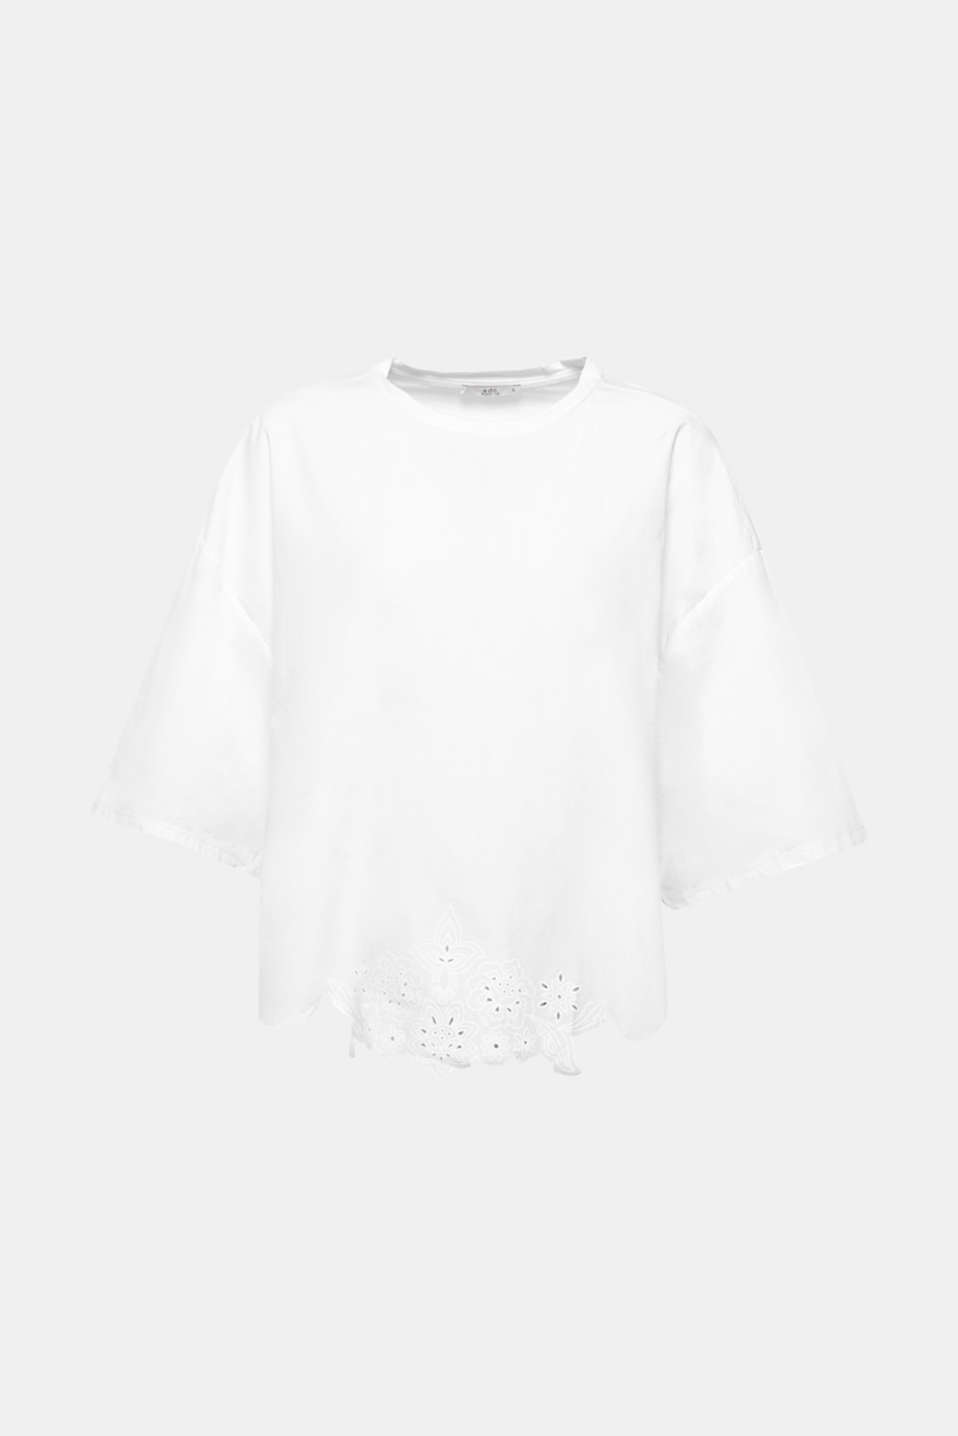 The laser cut on the front in a lace look with a floral print gives this T-shirt in a trendy oversized silhouette its feminine, detail-loving flair.